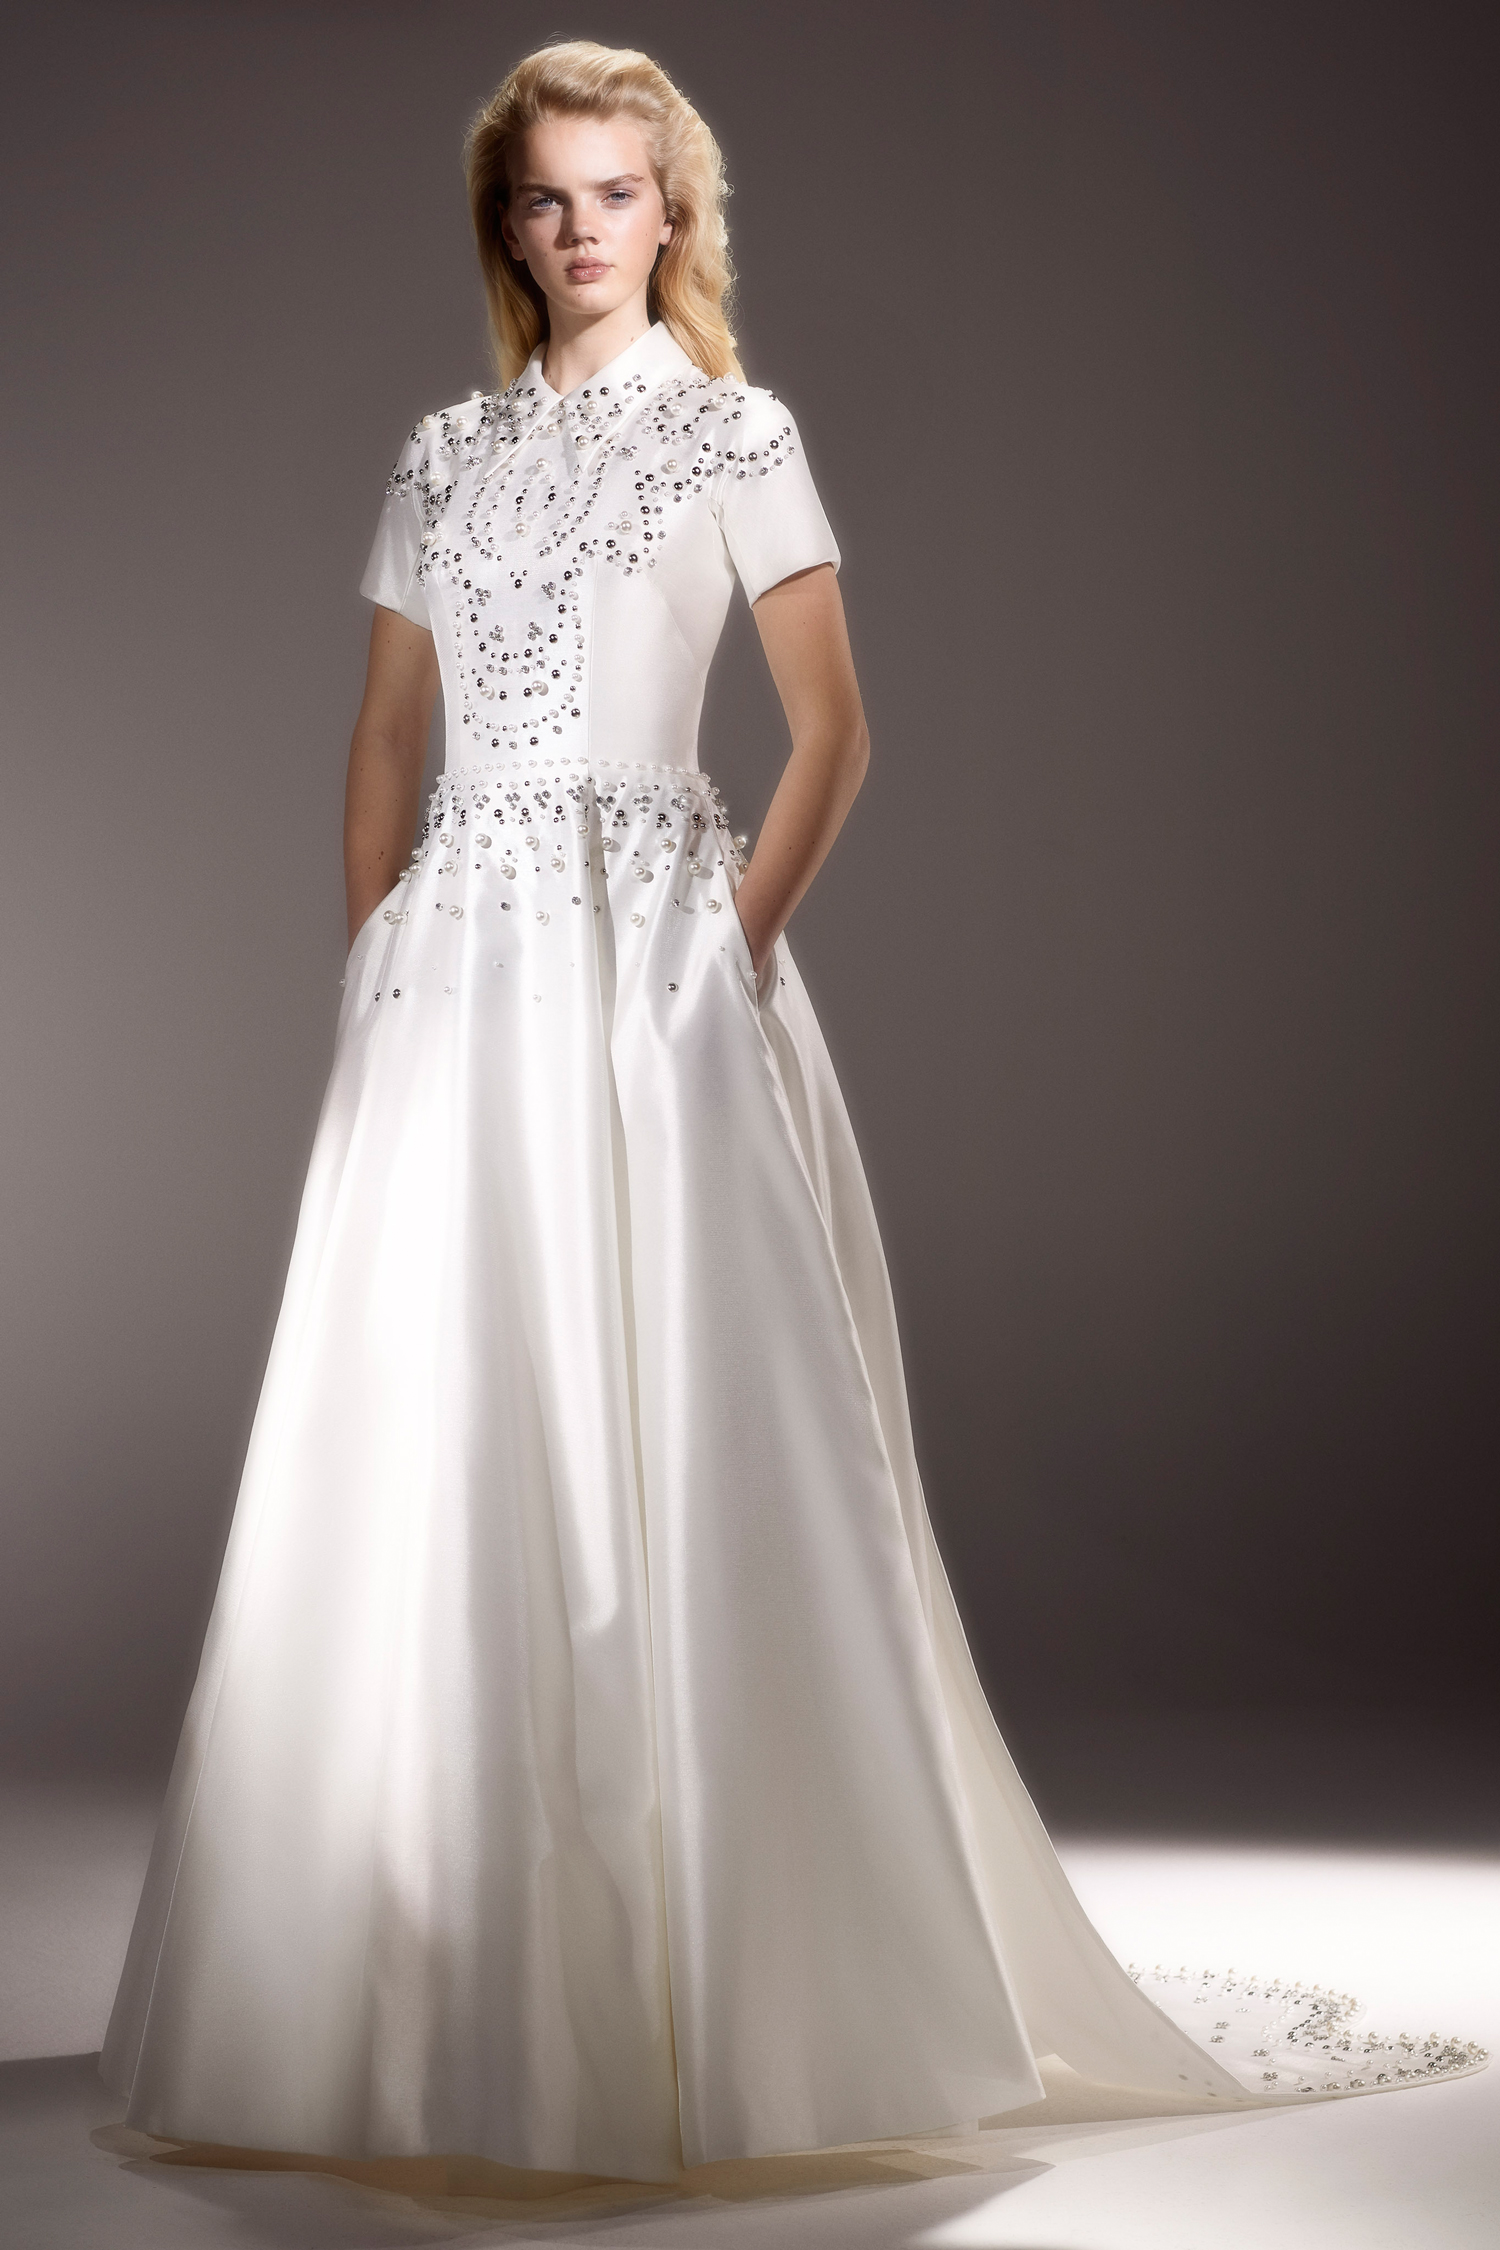 viktor and rolf short sleeve beaded wedding dress with collar spring 2020